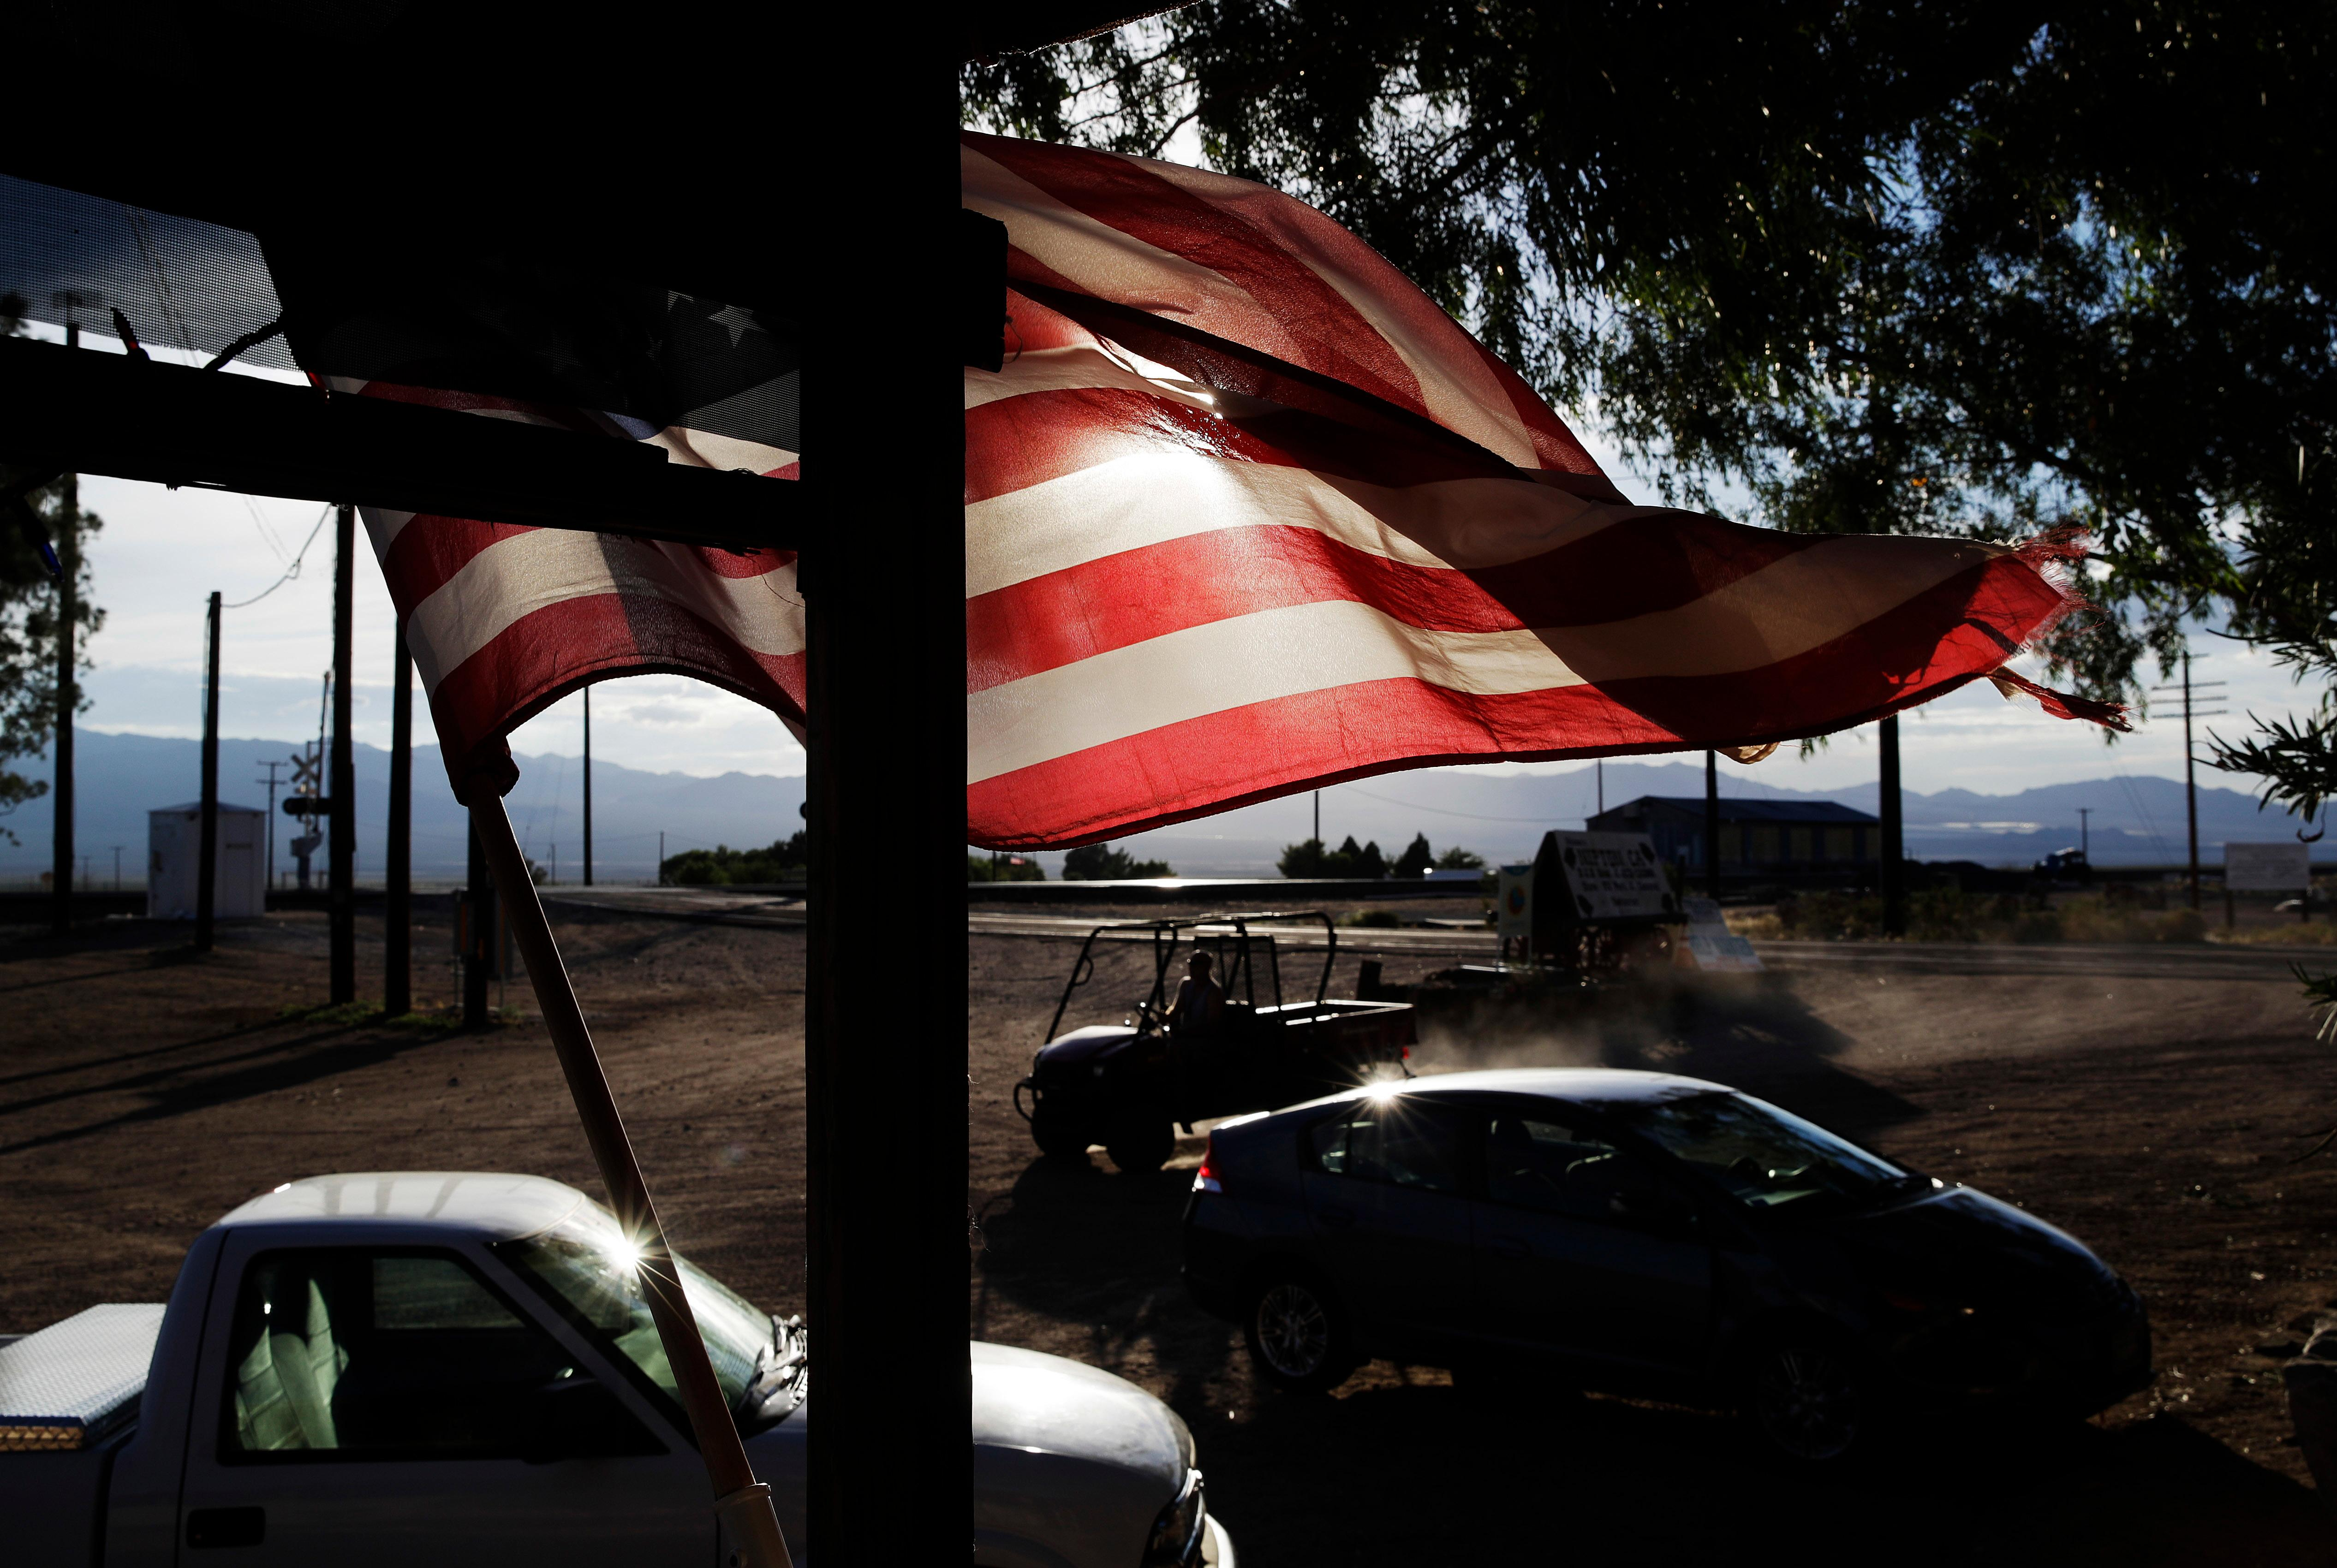 A flag flies in front of a store, Thursday, Aug. 3, 2017, in Nipton, Calif. American Green Inc., one of the nation's largest cannabis companies, announced it has bought the entire 80 acre California desert town of Nipton. (AP Photo/John Locher)